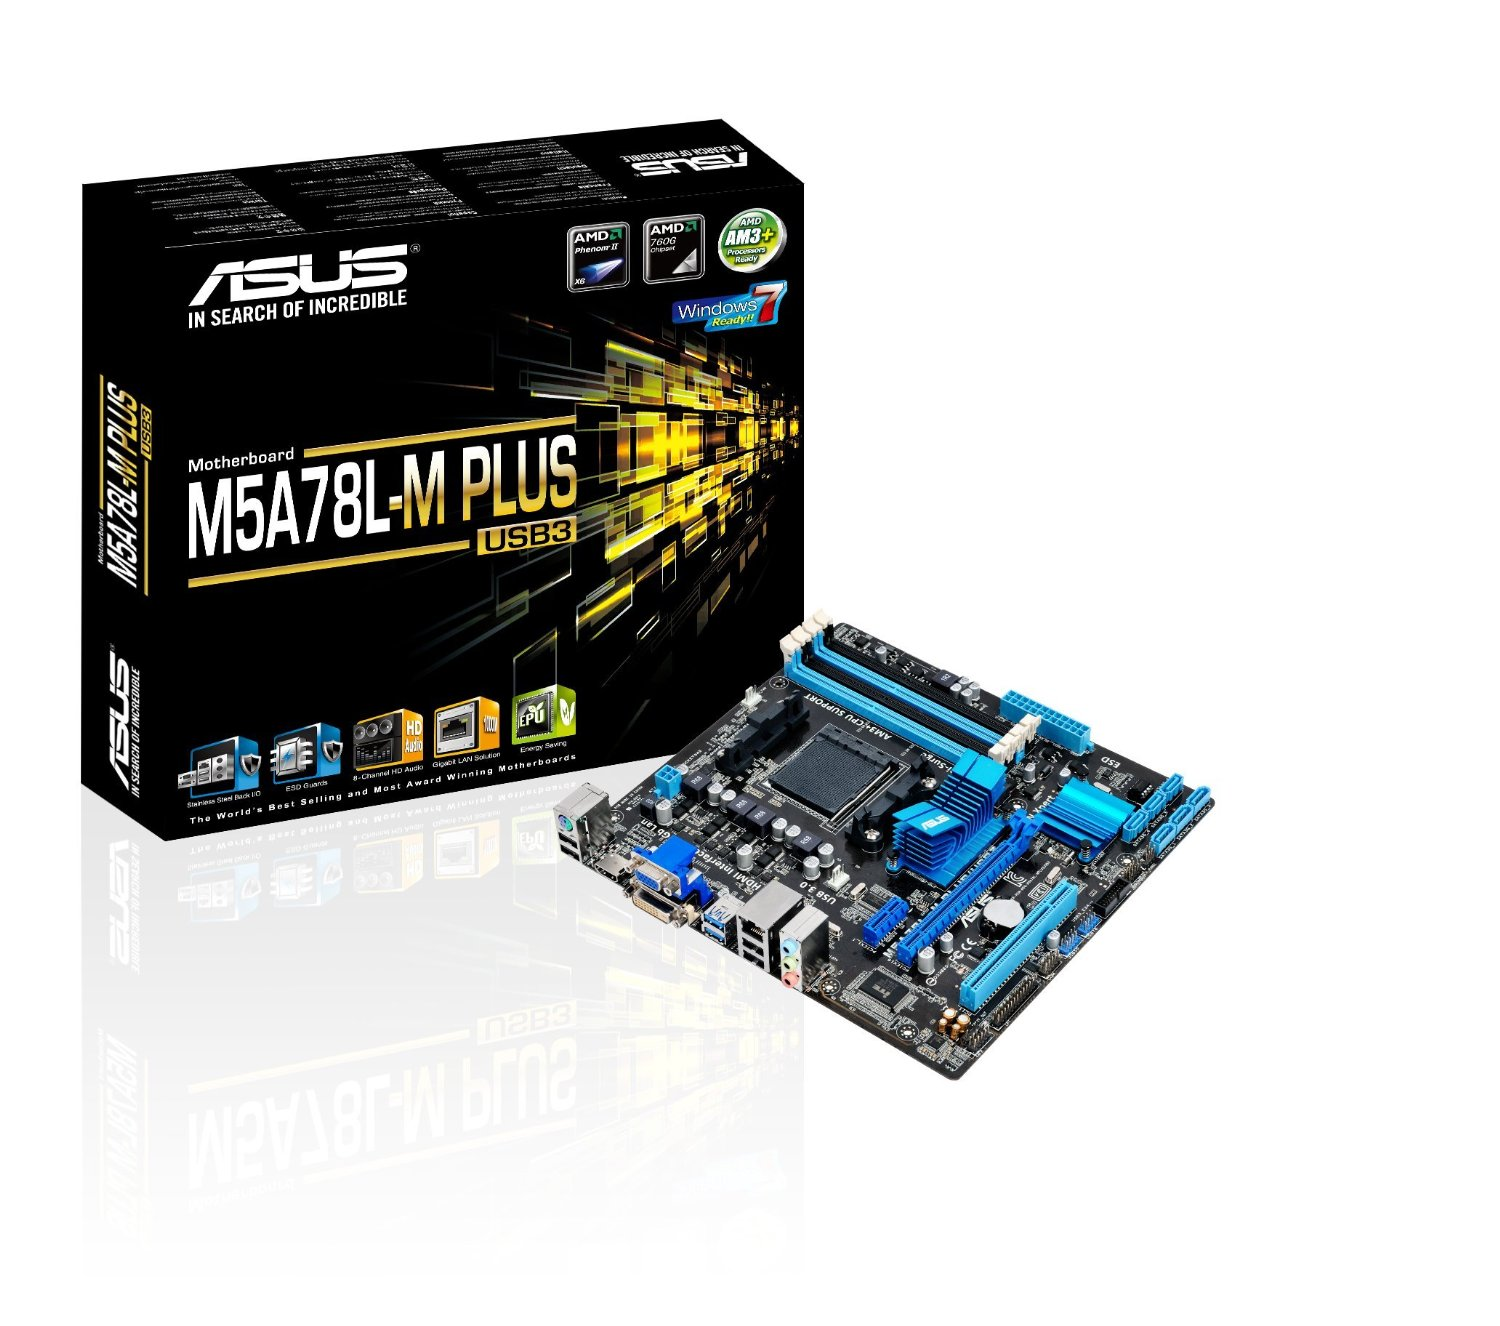 asus m5a78l m plus usb3 am3 ddr3 hdmi 760g microatx motherboard 97 asus m5a78l m plus usb3 am3 ddr3 hdmi 760g microatx motherboard  at readyjetset.co